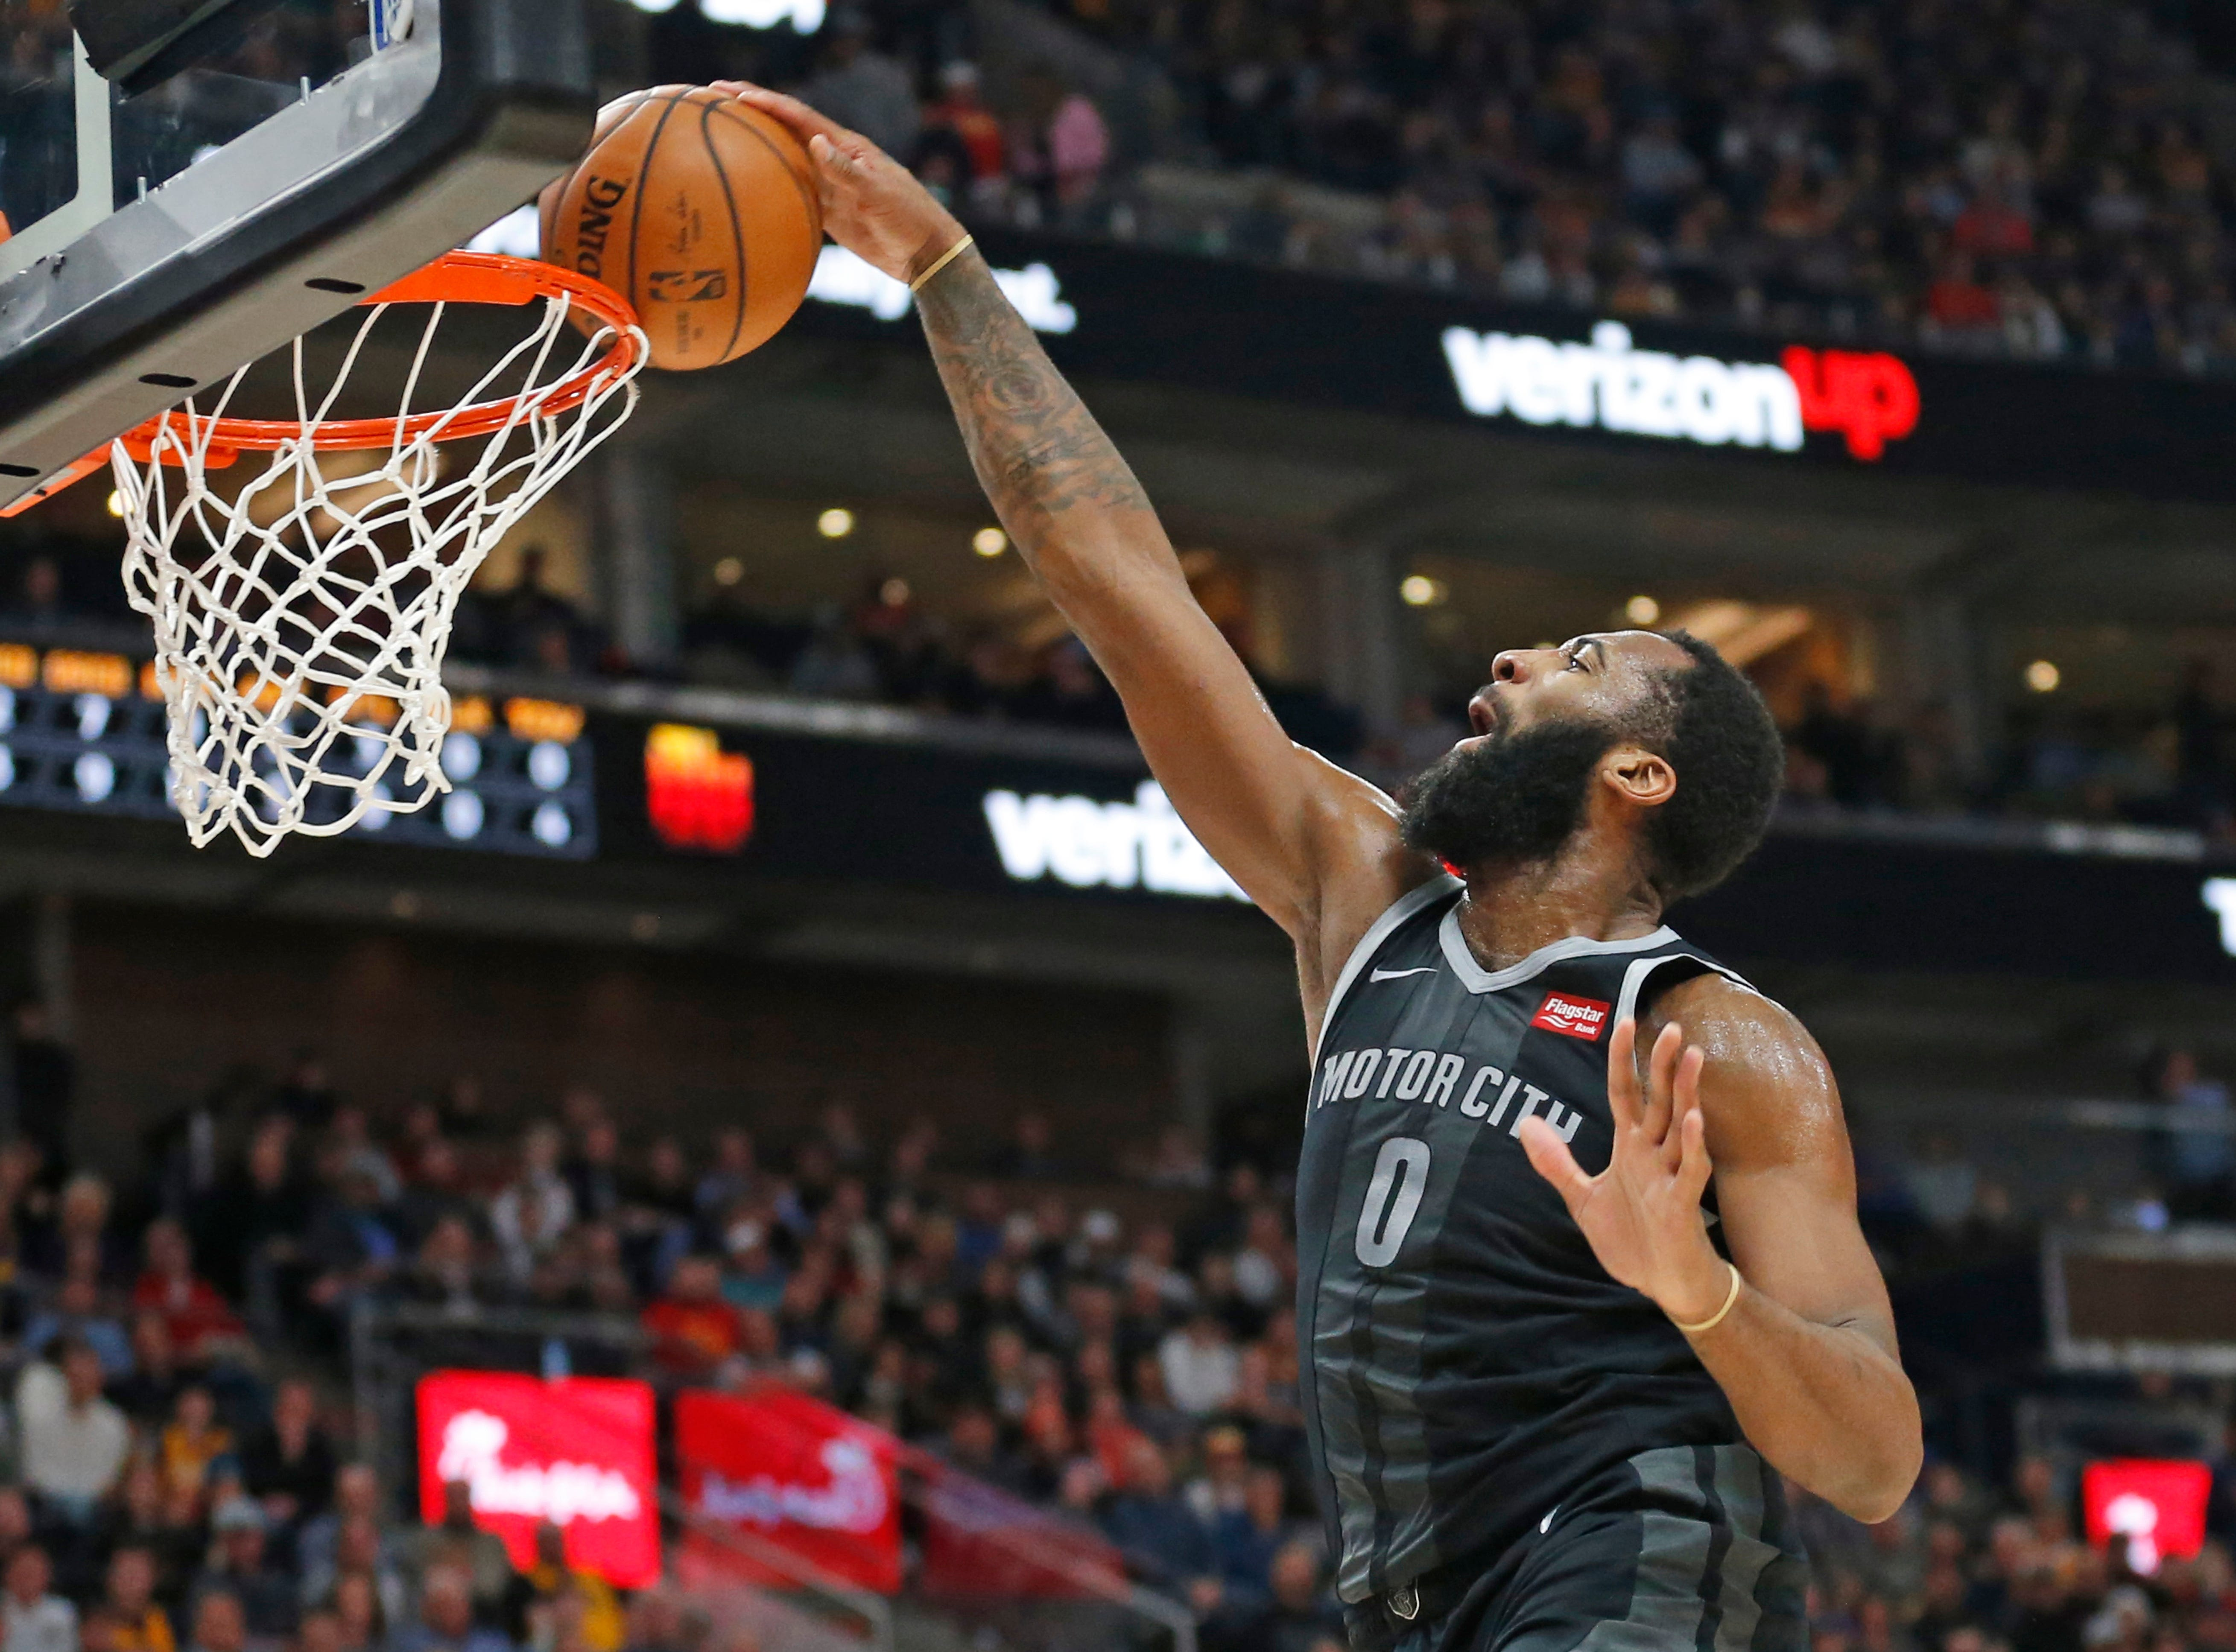 Pistons center Andre Drummond dunks during the first half of the 100-94 loss to the Jazz on Monday, Jan. 14, 2019, in Salt Lake City.